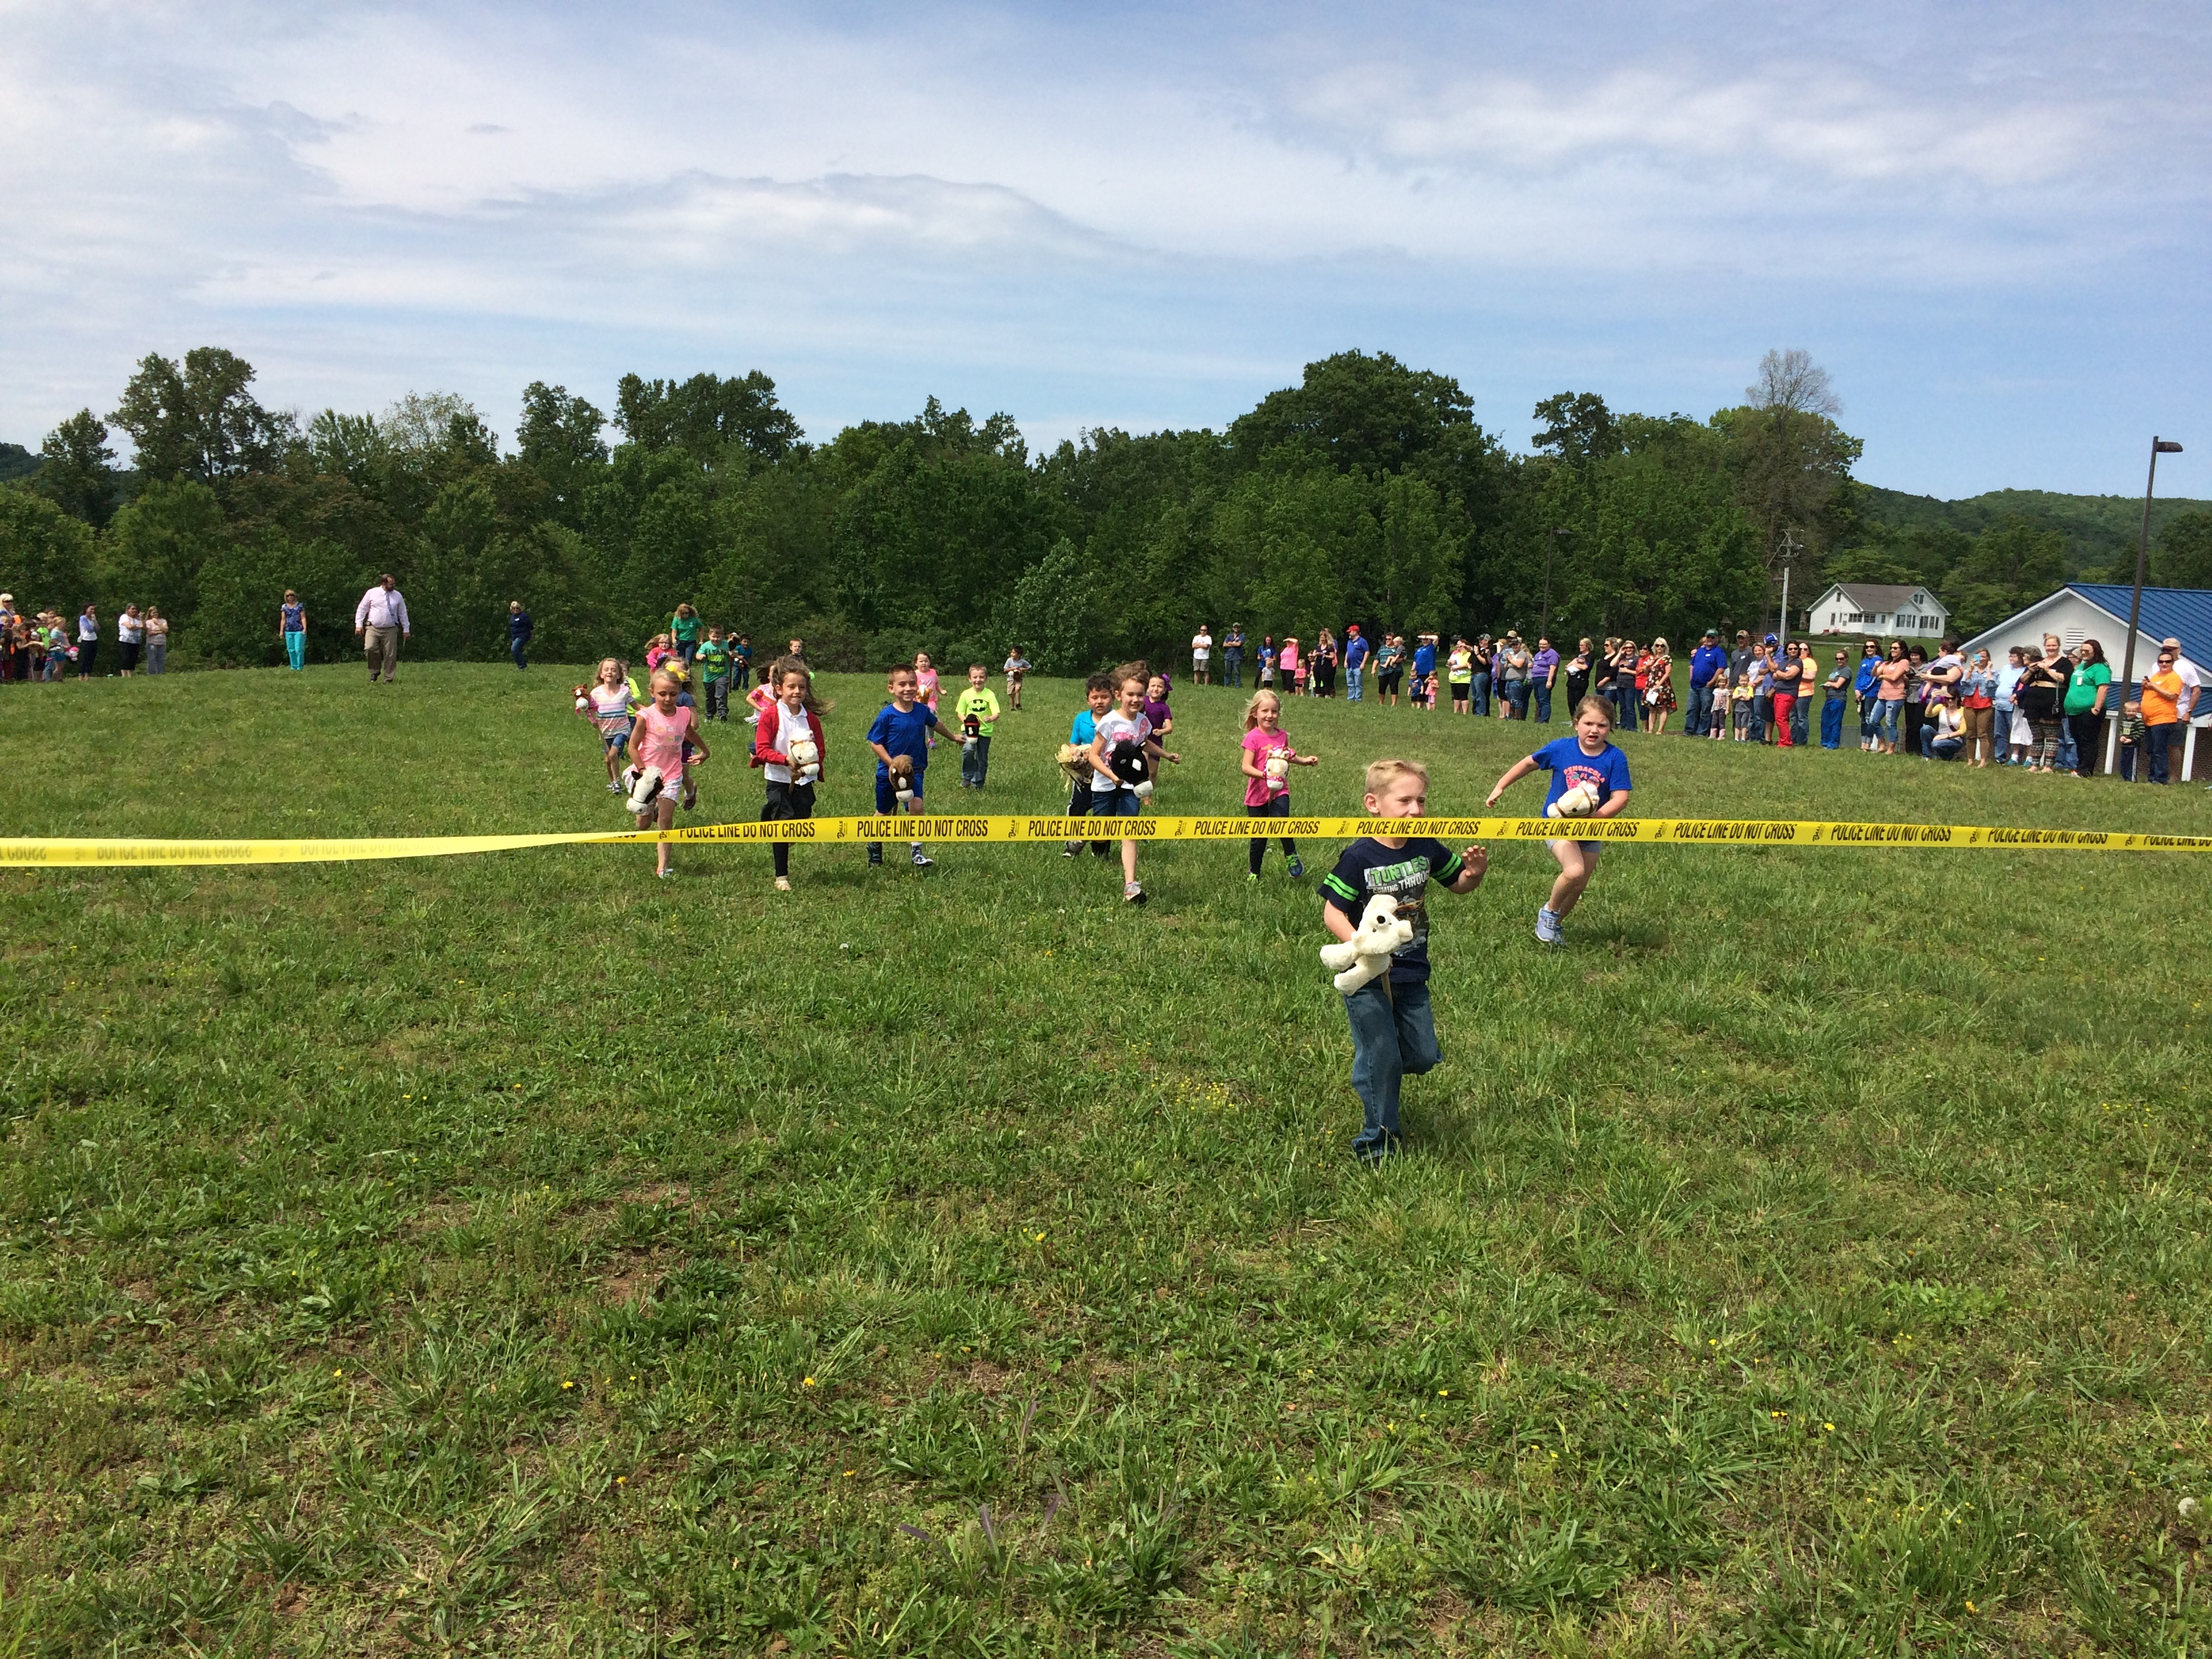 Stick horses were everywhere at the annual Kindergarten Little Kentucky Derby at the Early Childhood Center on Monday, May 8th.